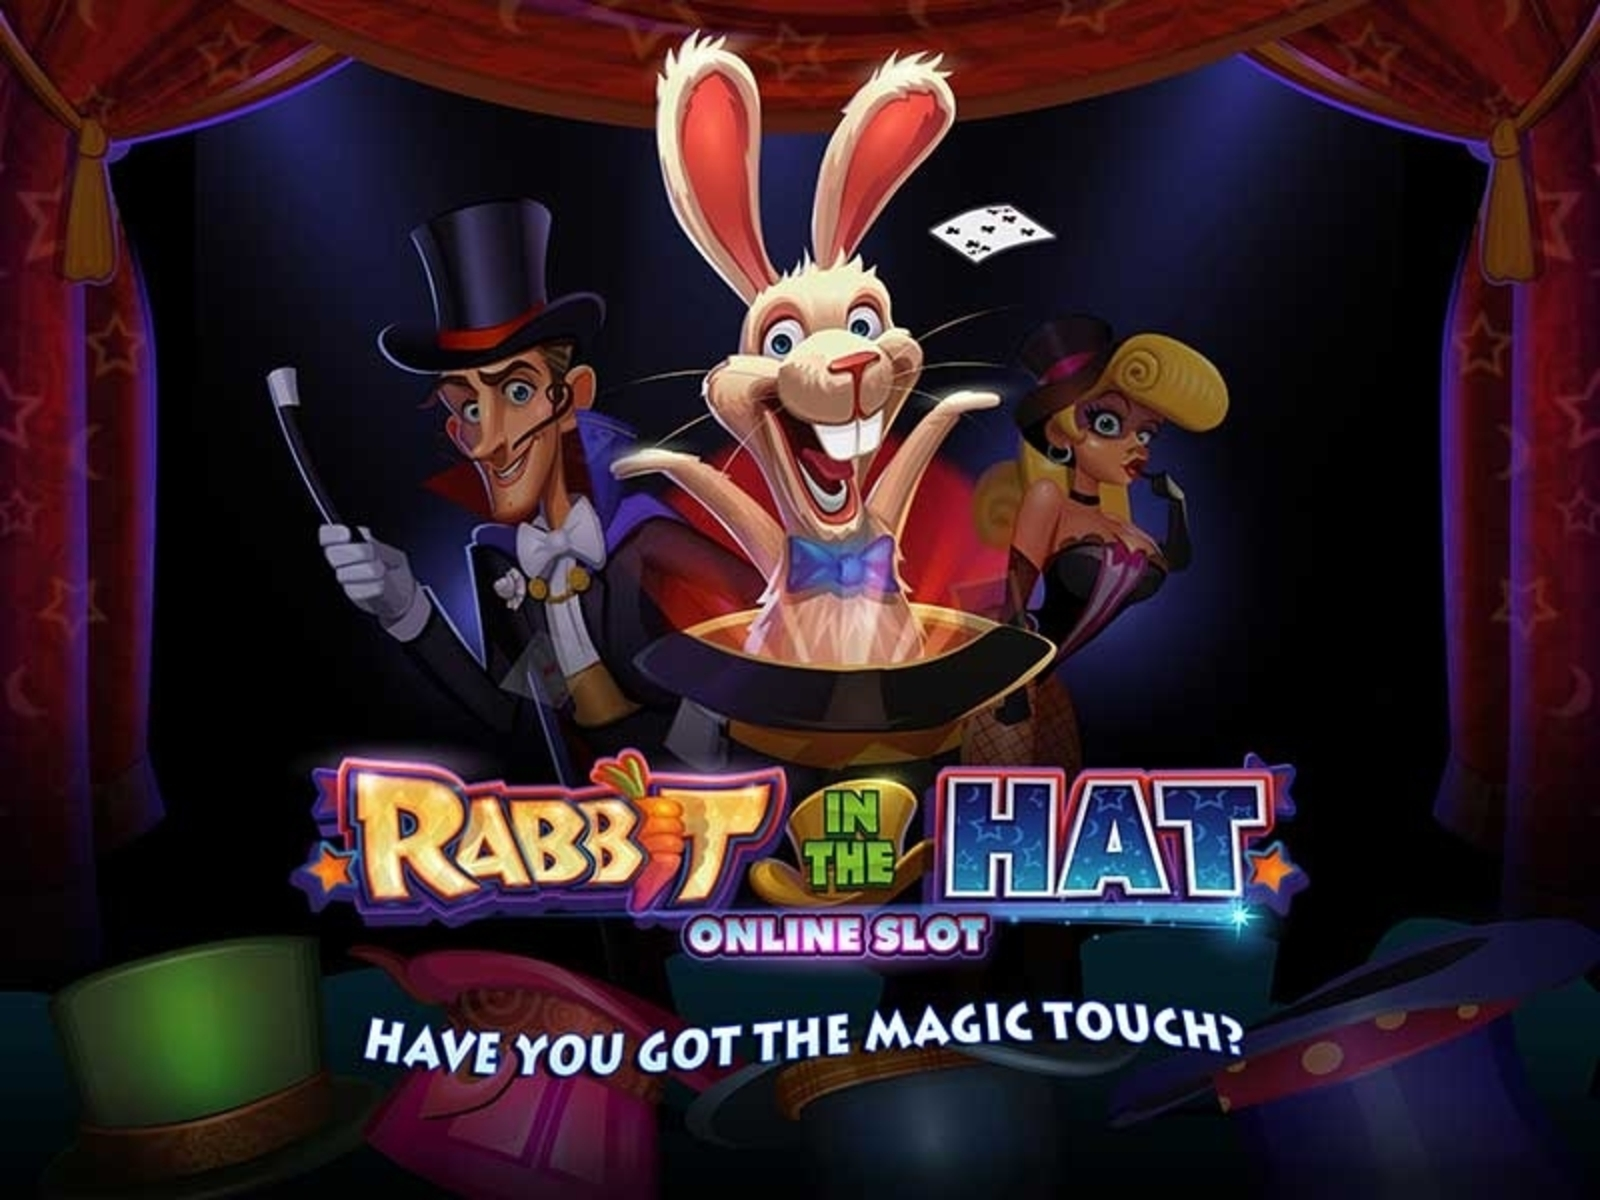 The Rabbit In The Hat Online Slot Demo Game by Microgaming